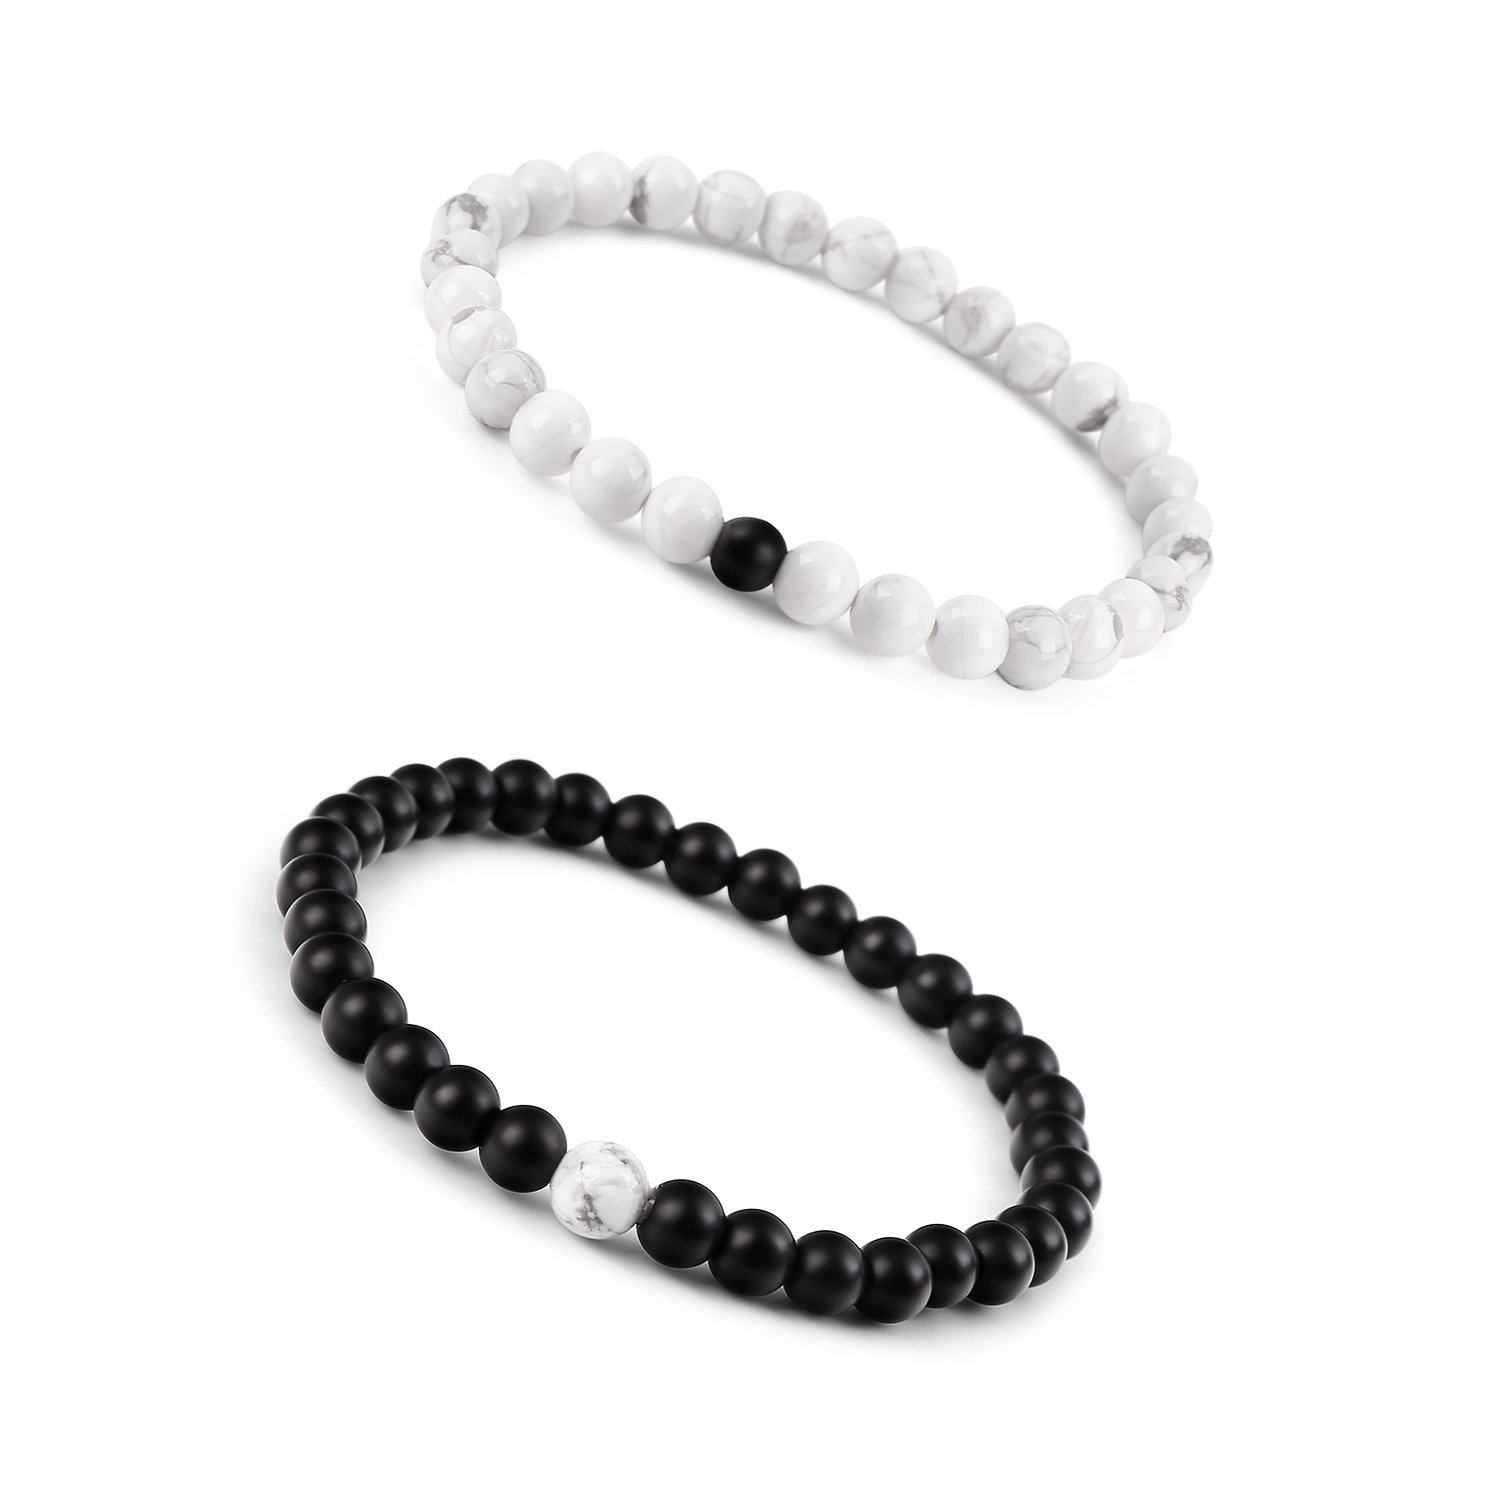 Paxuan Mens Womens Couples His And Hers Bracelet Black Matte Agate &  Imported White Howlite Beads